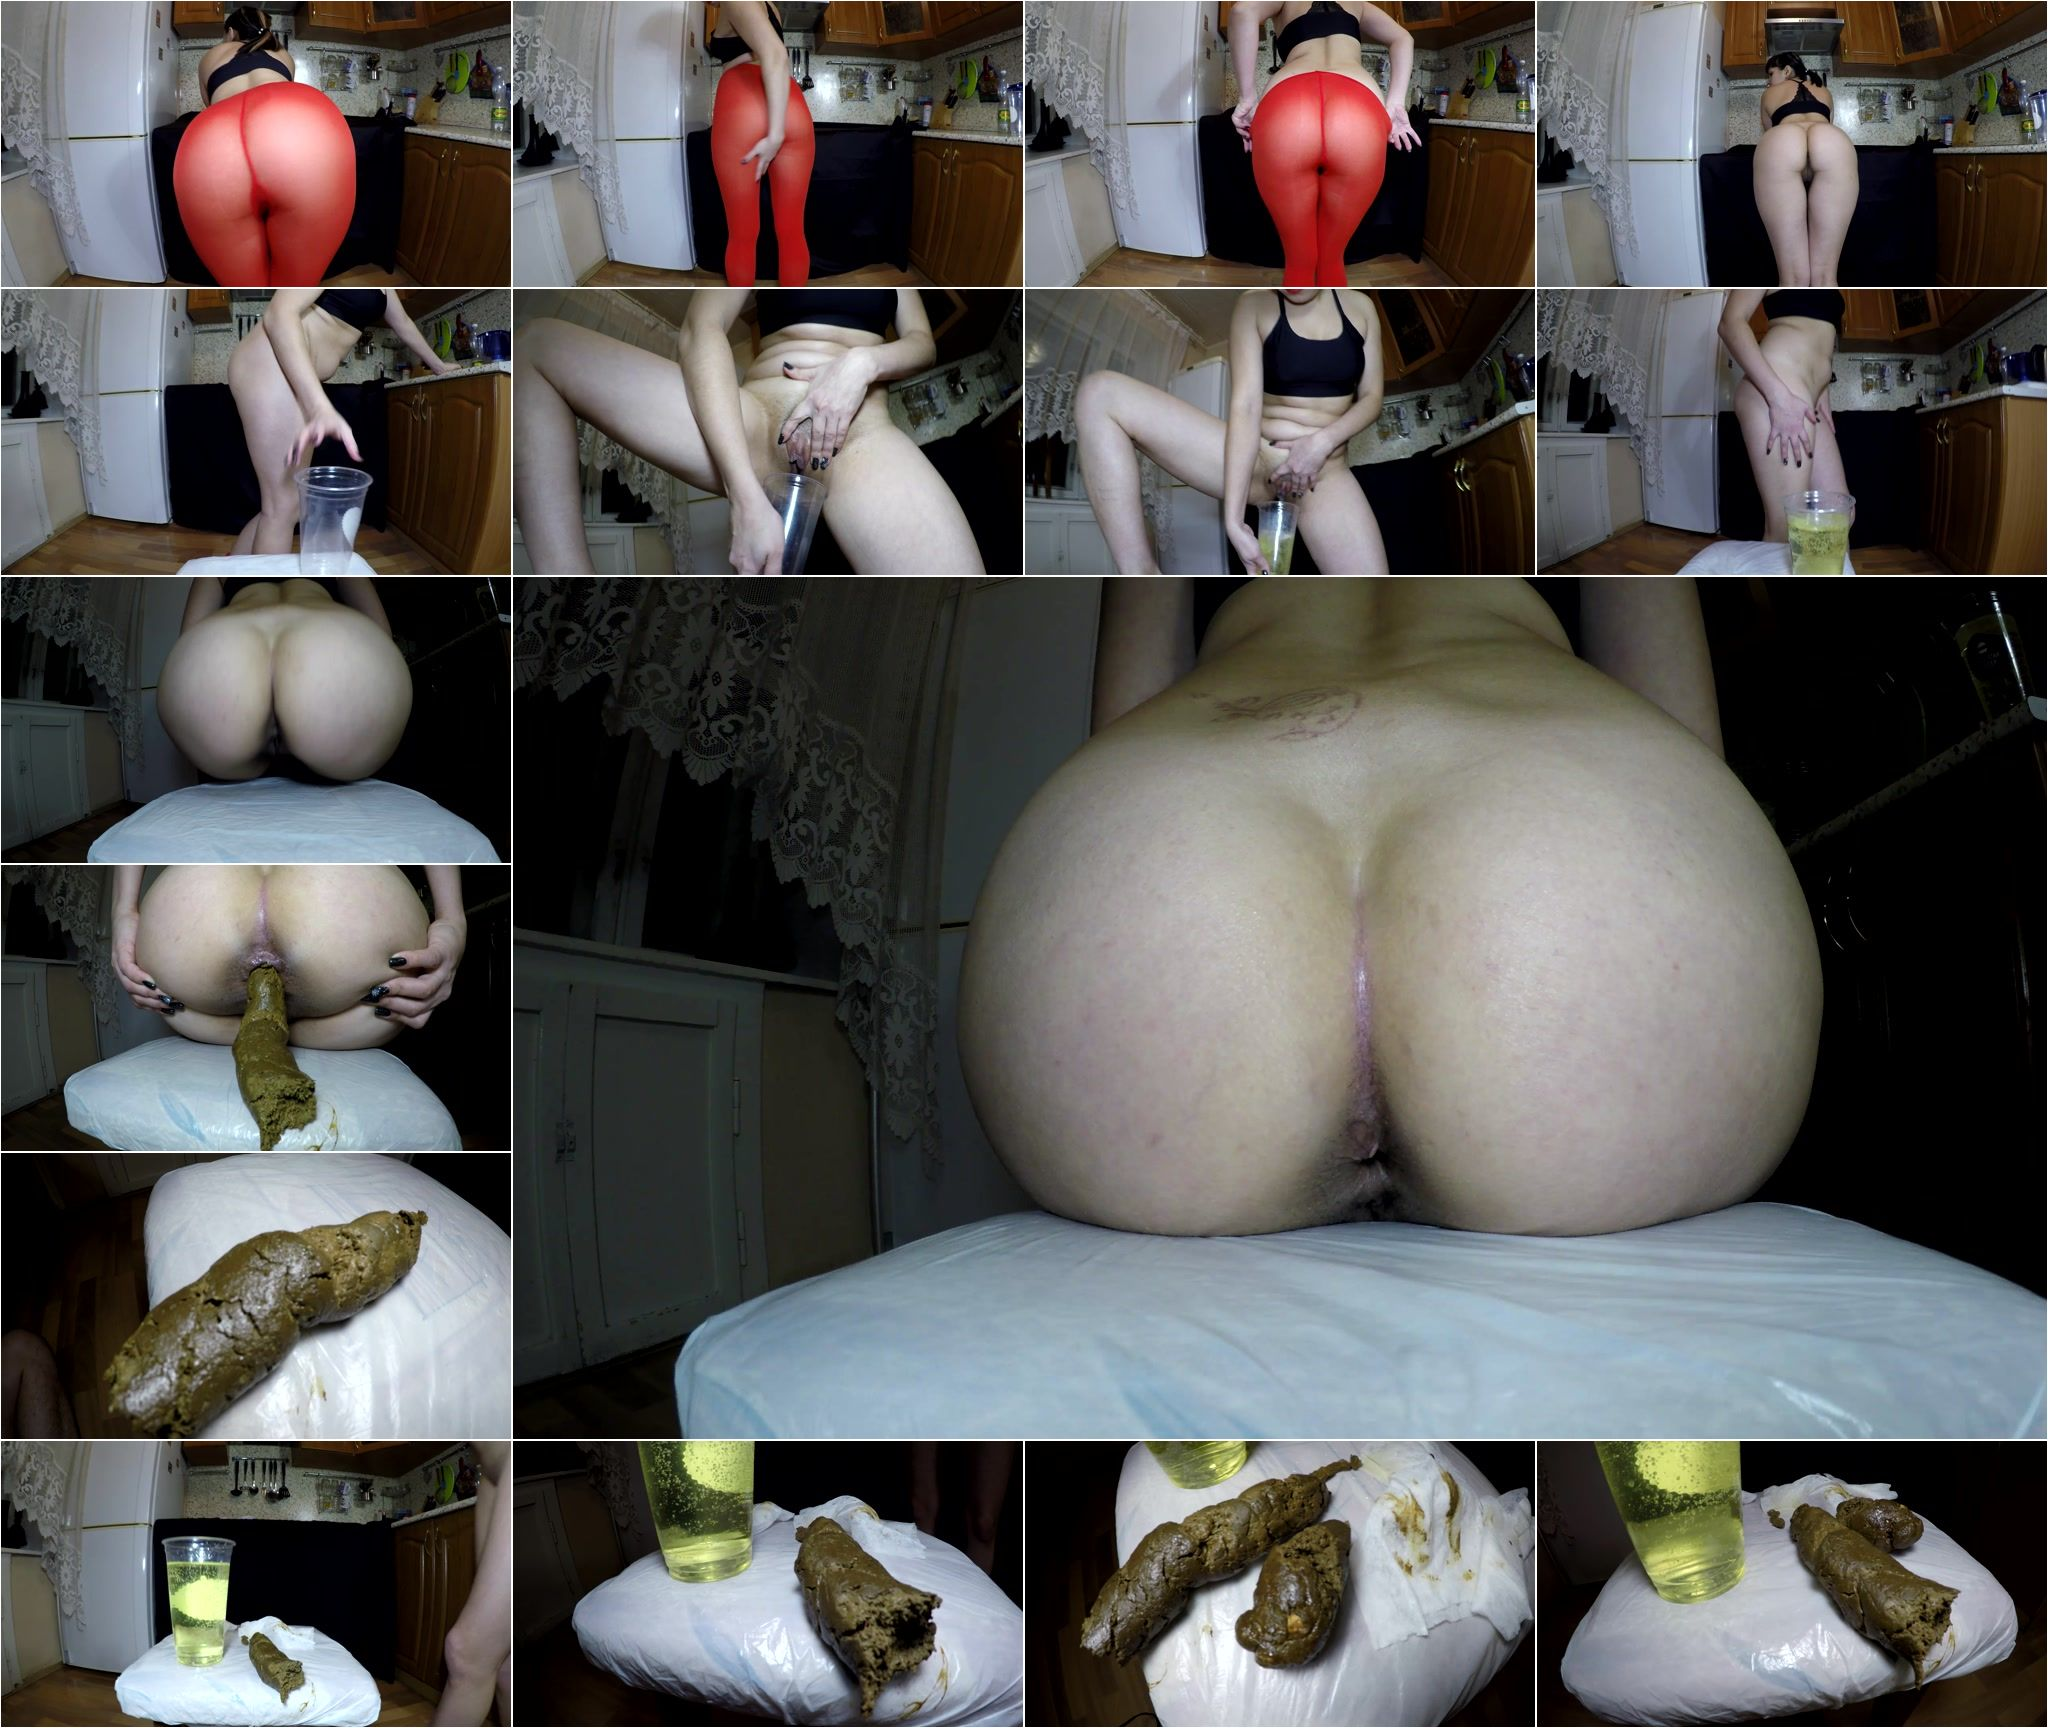 Adelina Frau HD   Fat Shit Out Of Curvy Ass   .ScrinList - Adelina Frau HD - Fat Shit Out Of Curvy Ass